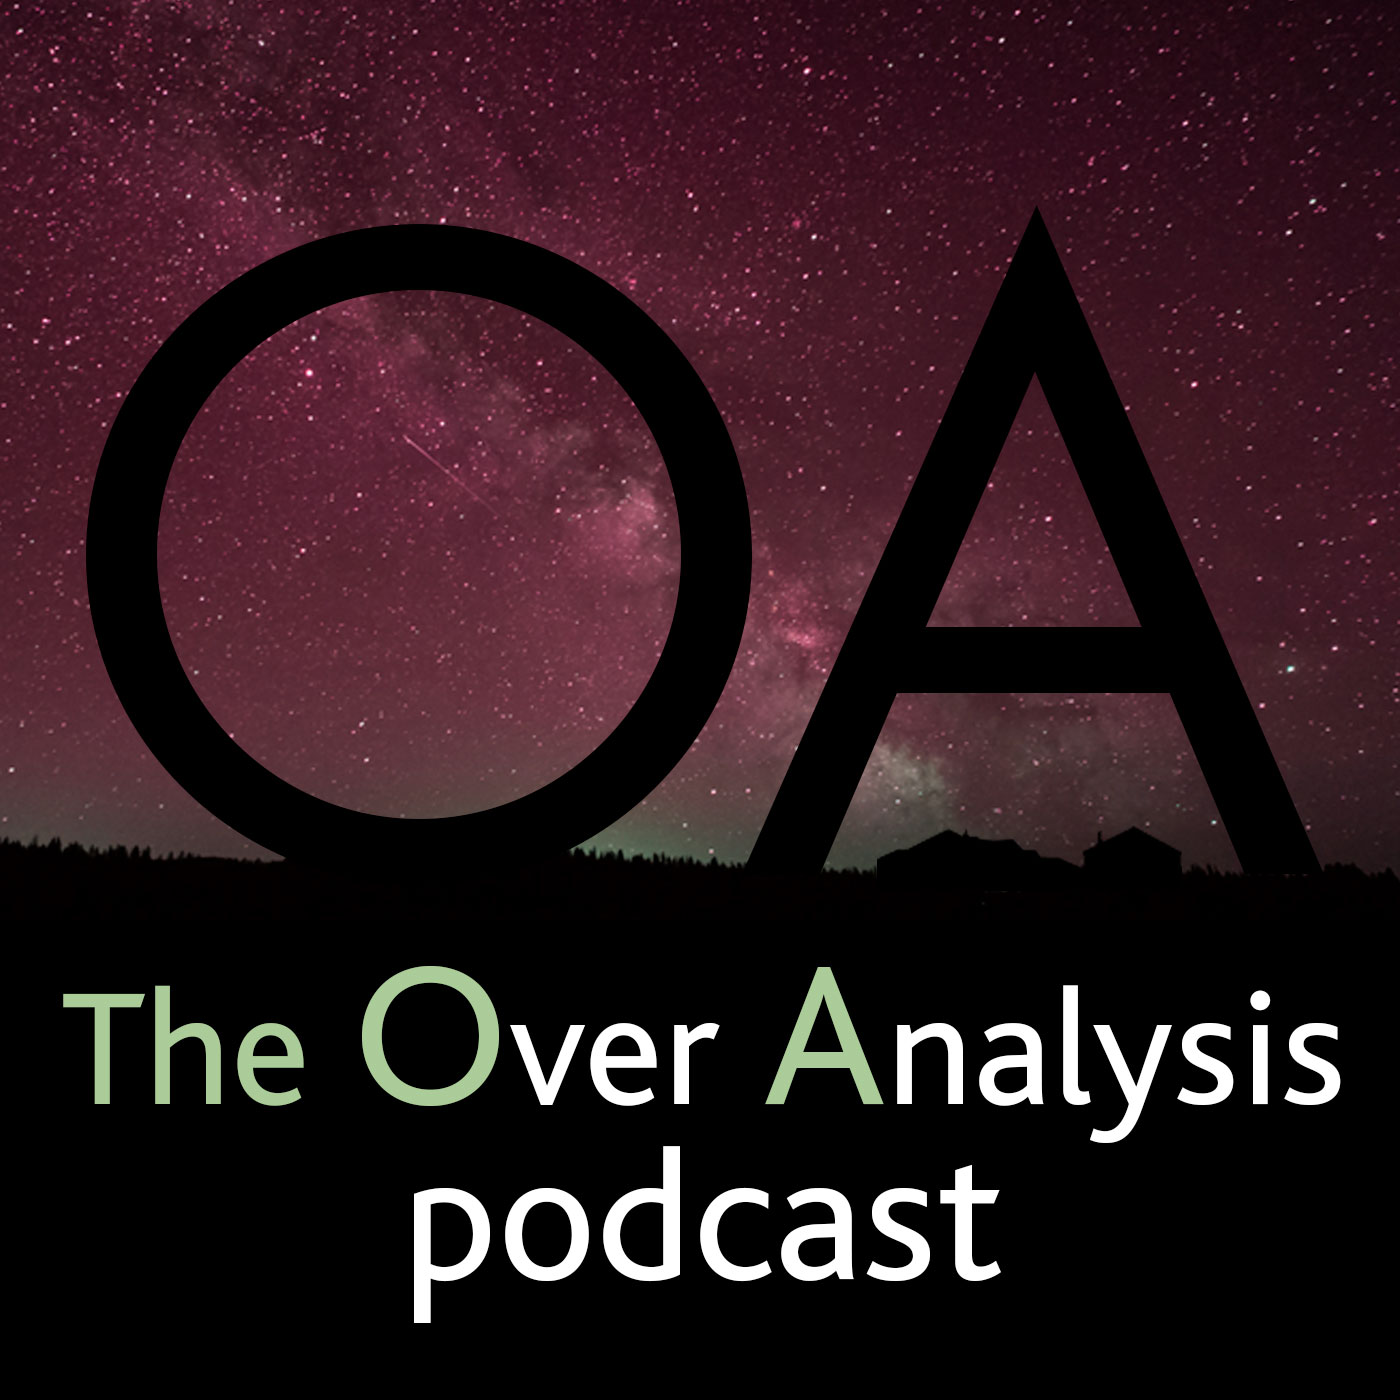 The Over Analysis podcast artwork